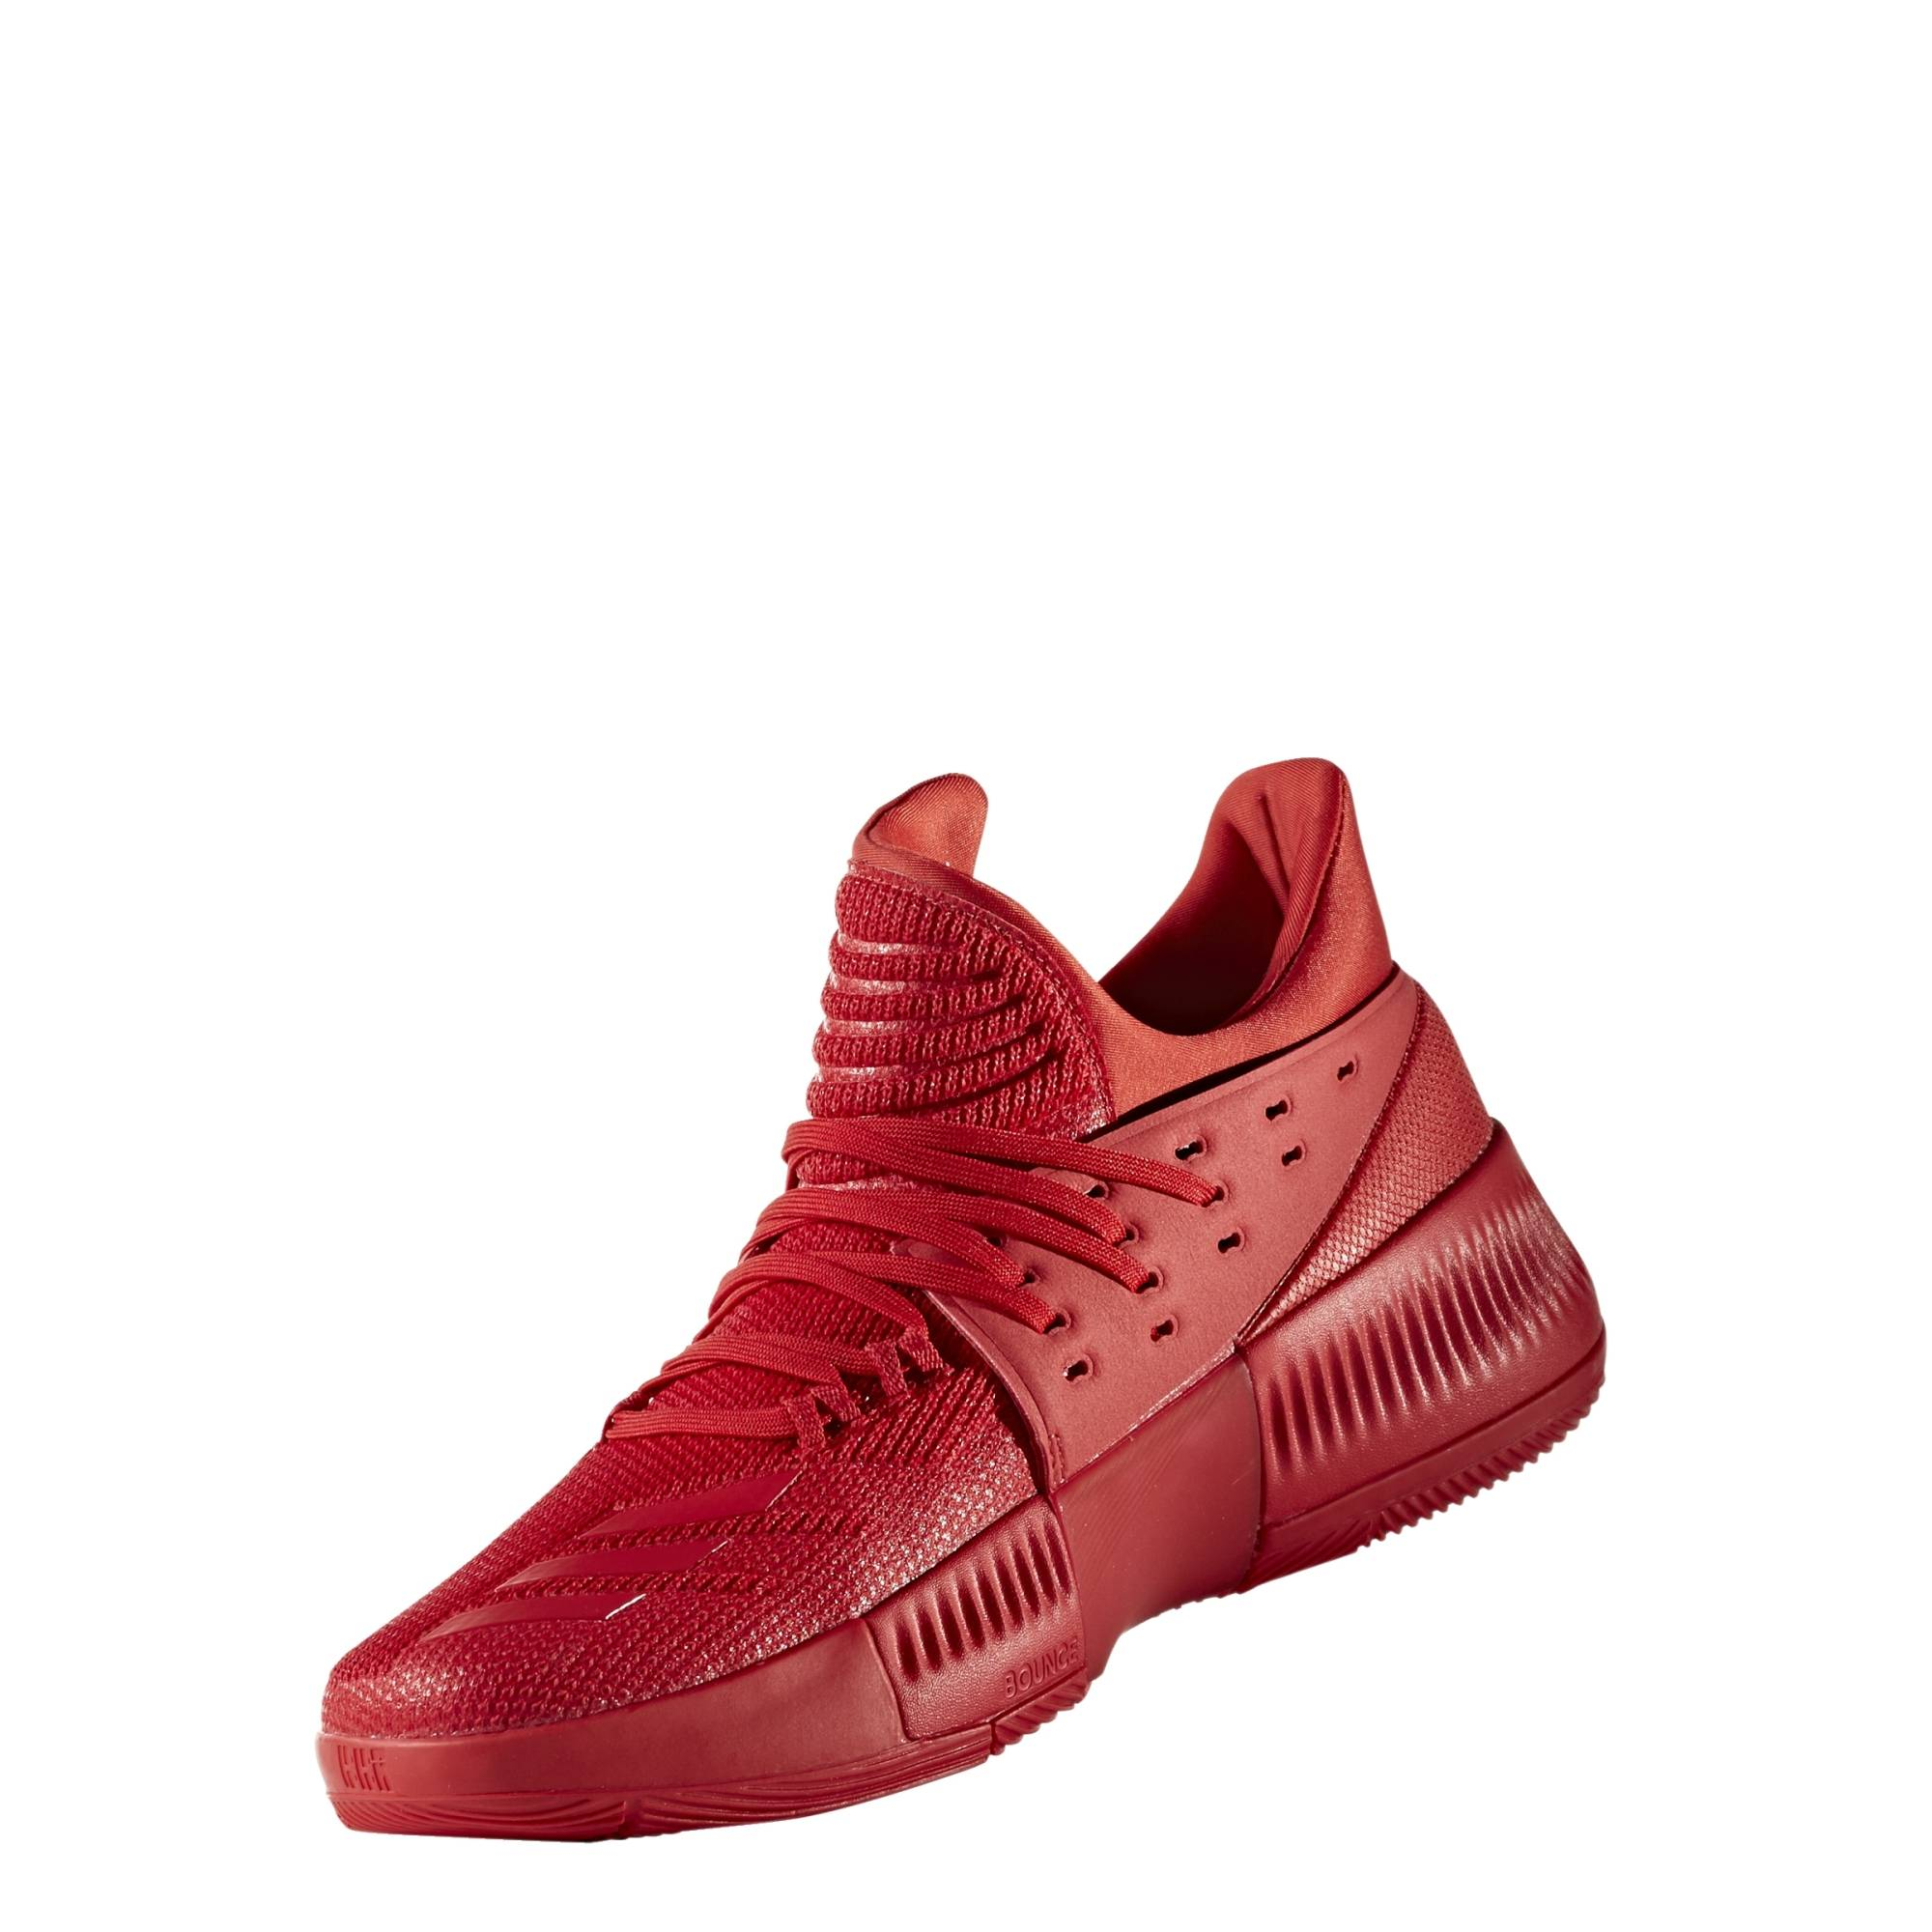 buy popular 5c94d c4f7c ADIDAS BASKETBALL DAME 3 ROOTS SHOES BB8337   San Siro Sports   Casual